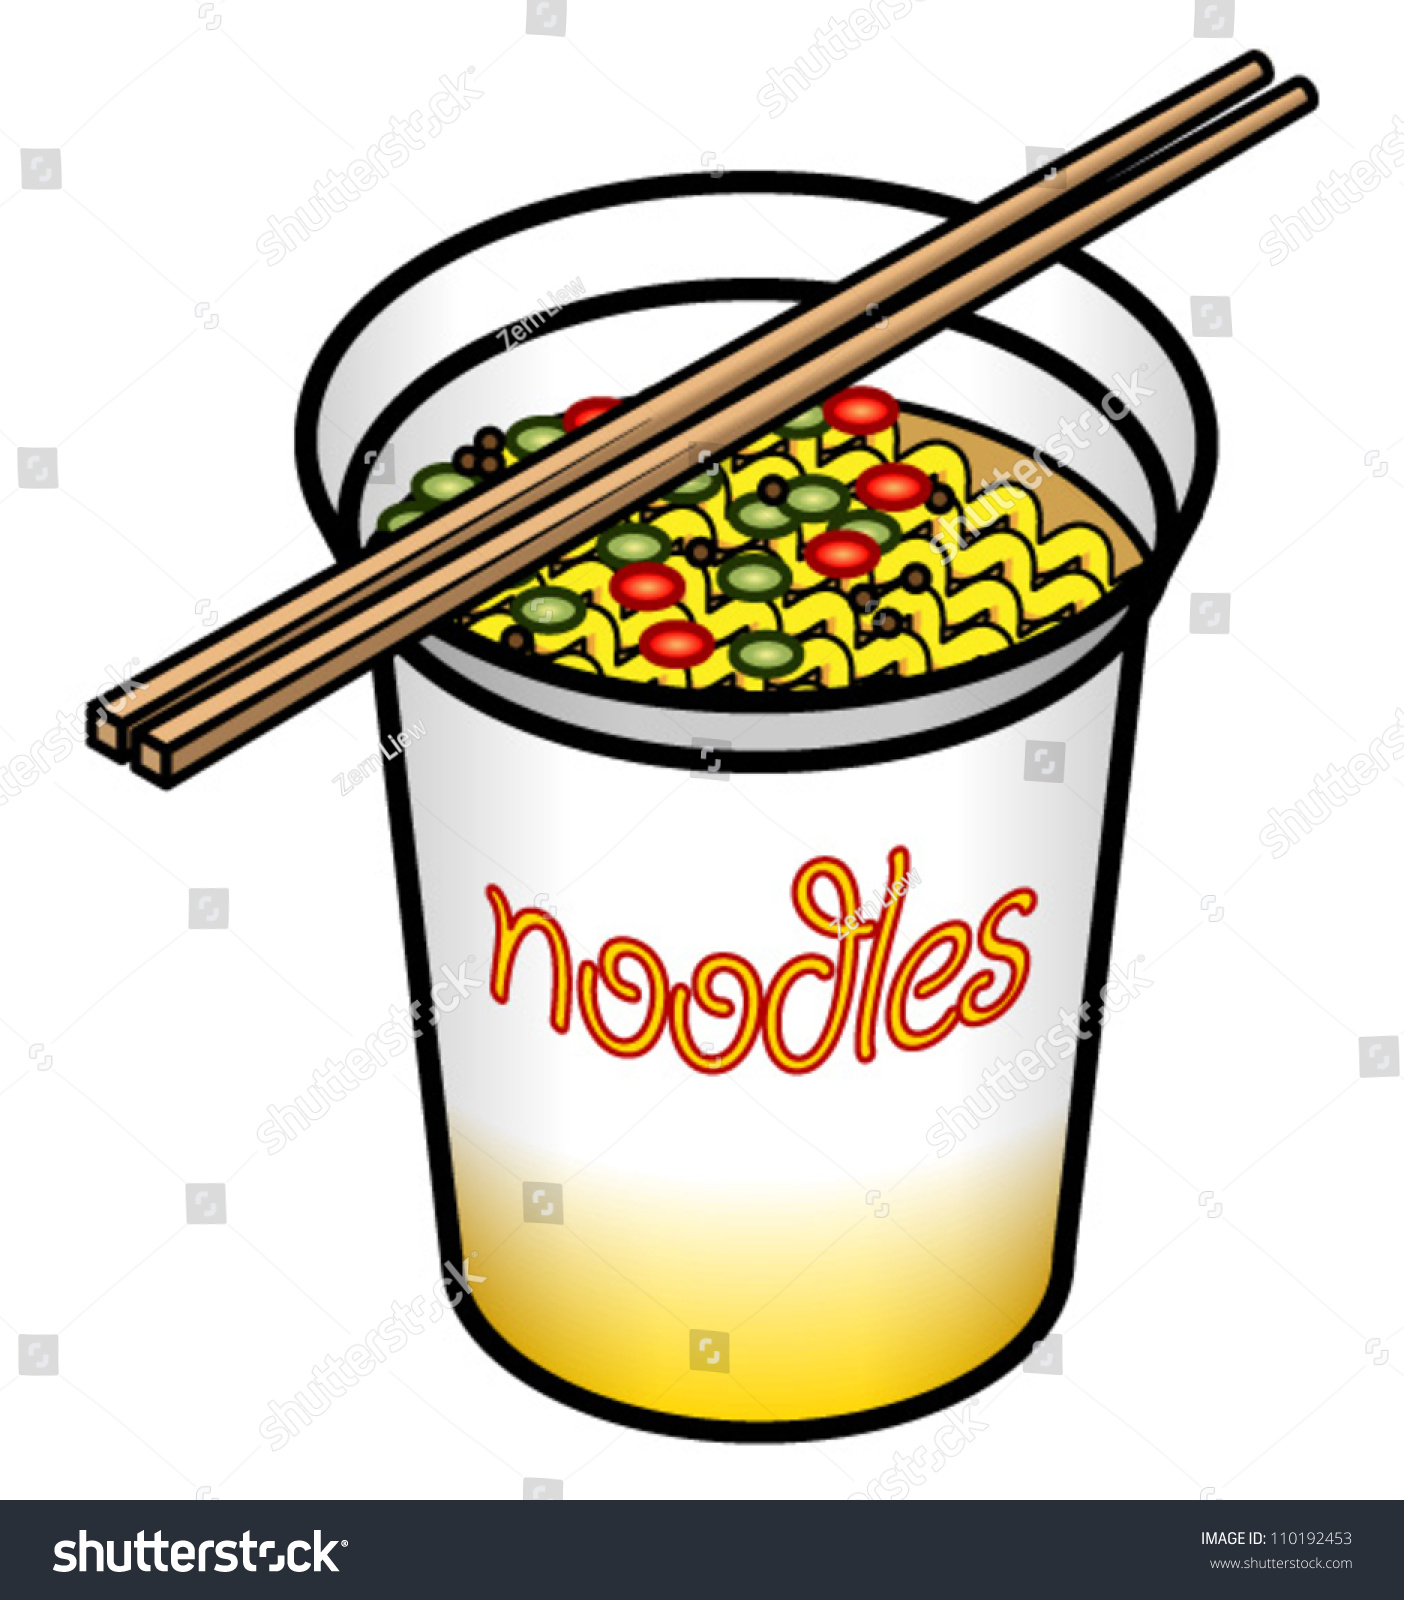 Instant Message Clip Art : A hot cup of instant noodles stock vector illustration